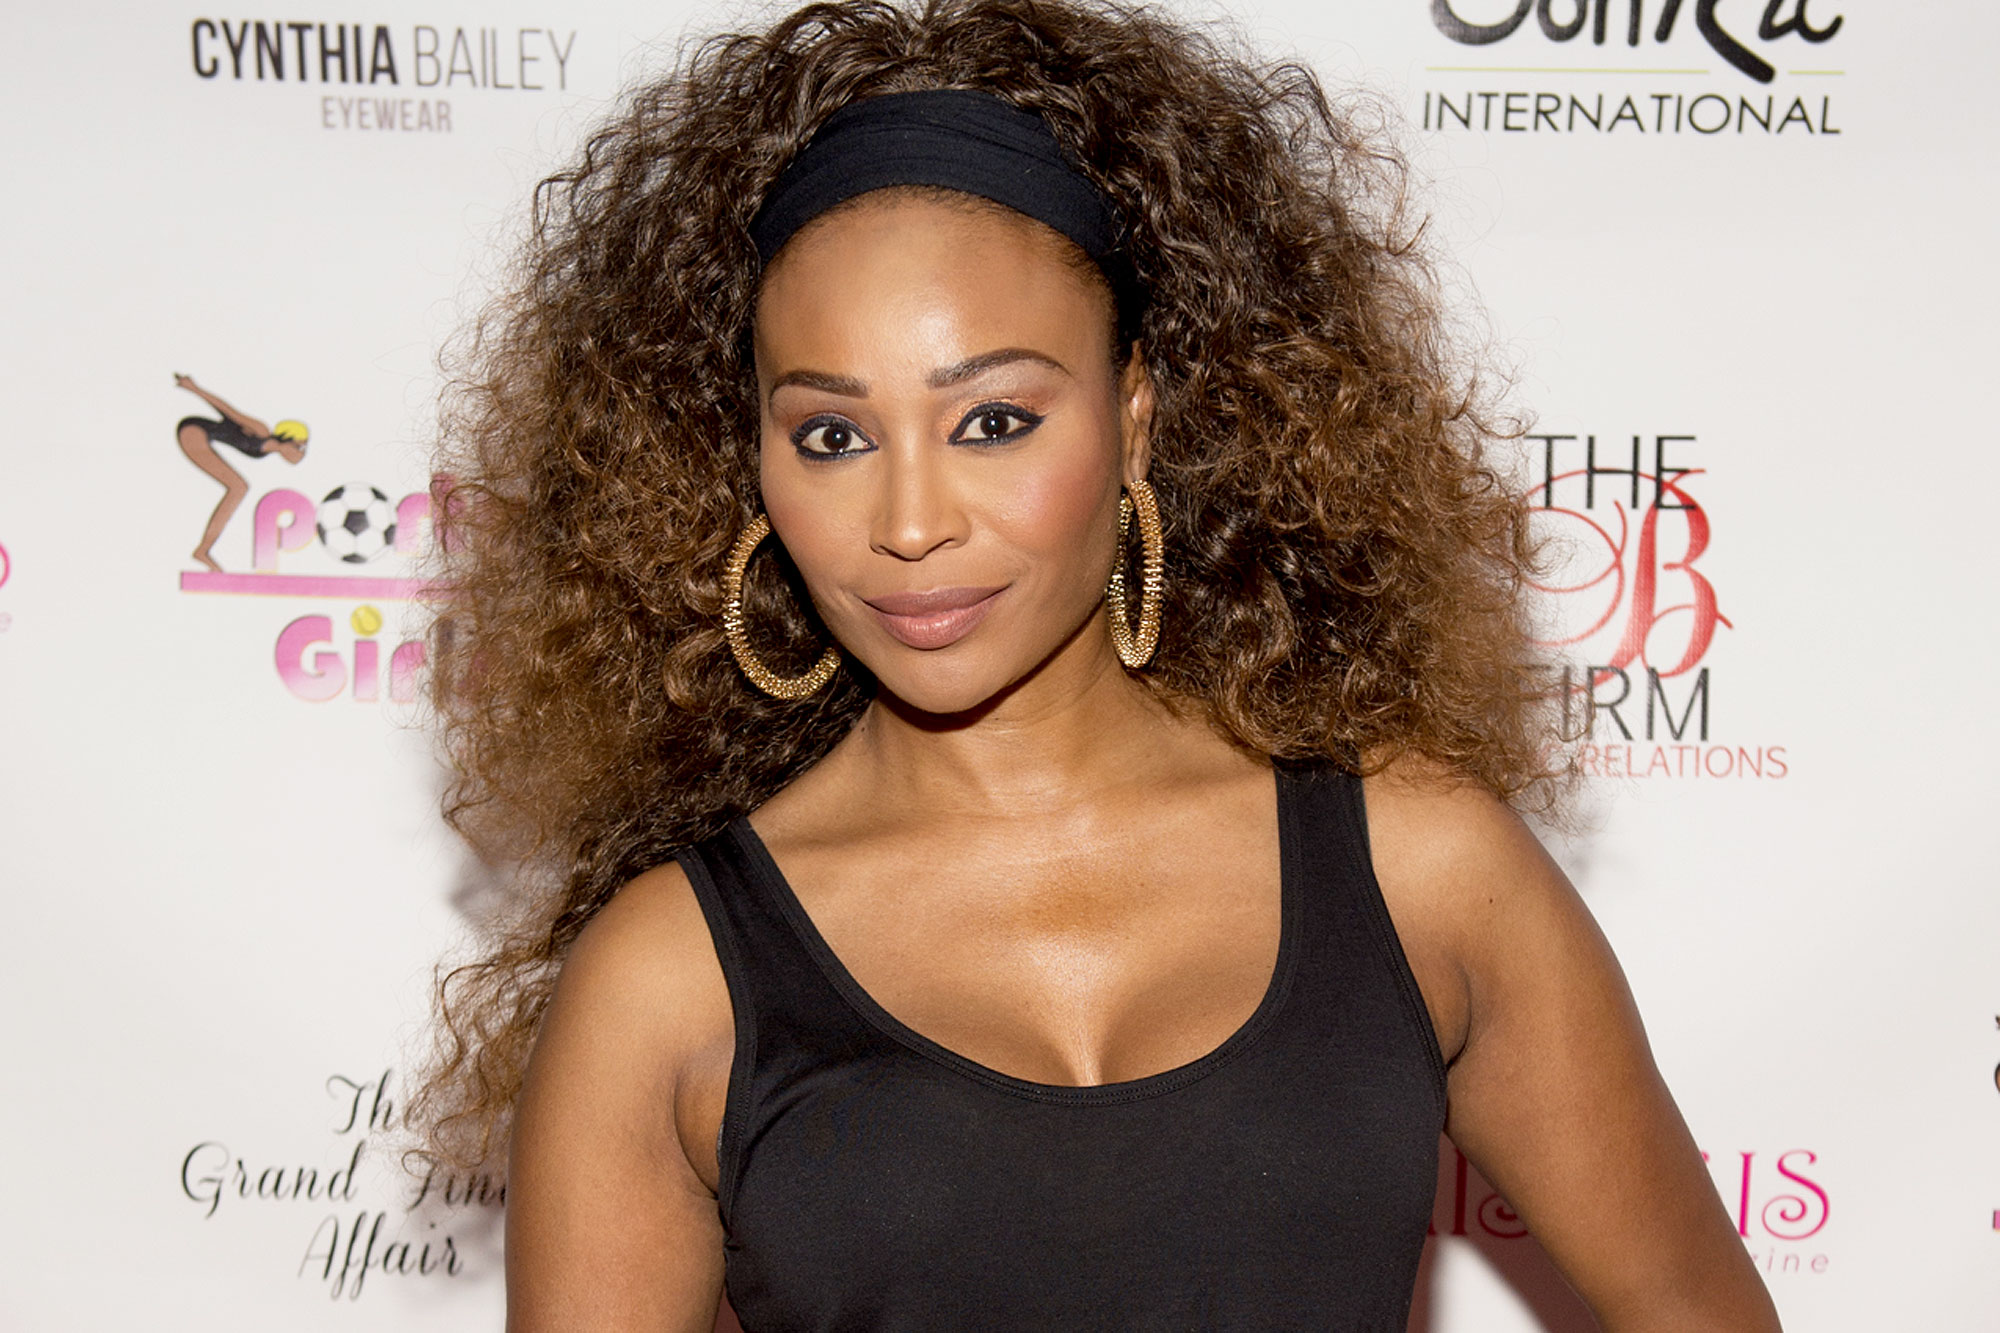 The Grand Finale Affair Hosted by Cynthia Bailey